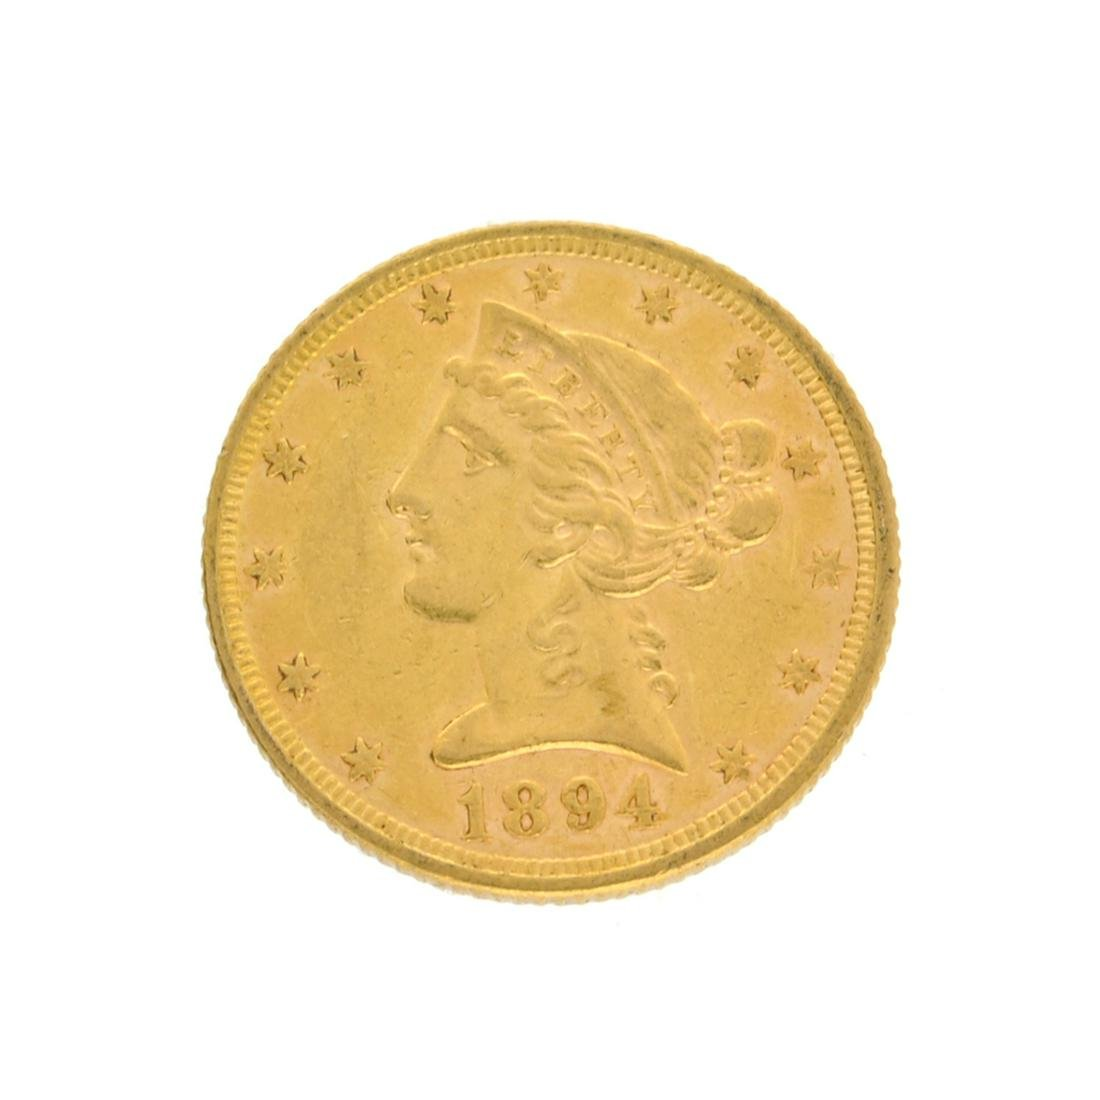 Extremely Rare 1894 $5 U.S. Liberty Head Gold Coin